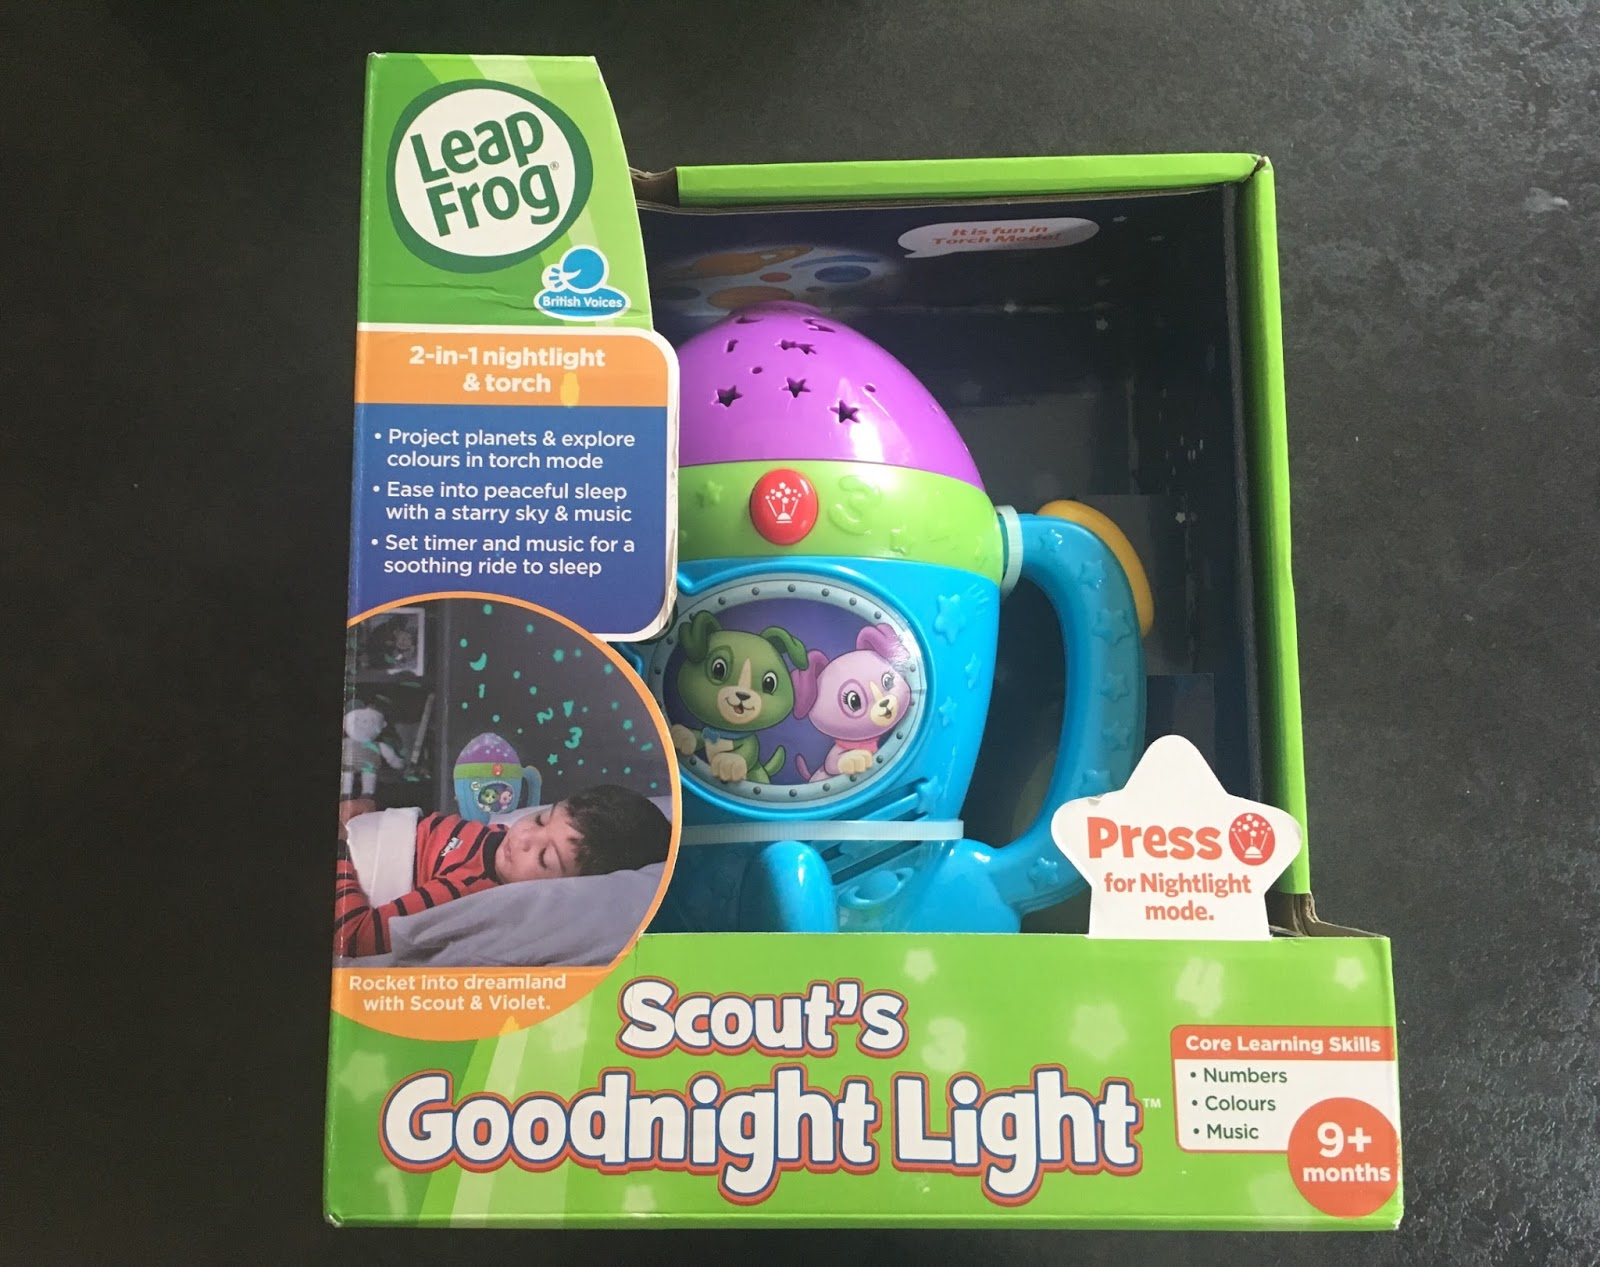 Next Up Is Scouts Goodnight Light. The Light Is Shaped Like A Rocket And Is  A Nightlight And A Torch. A Perfect 2 In 1 Product. When You Select The  Torch ...